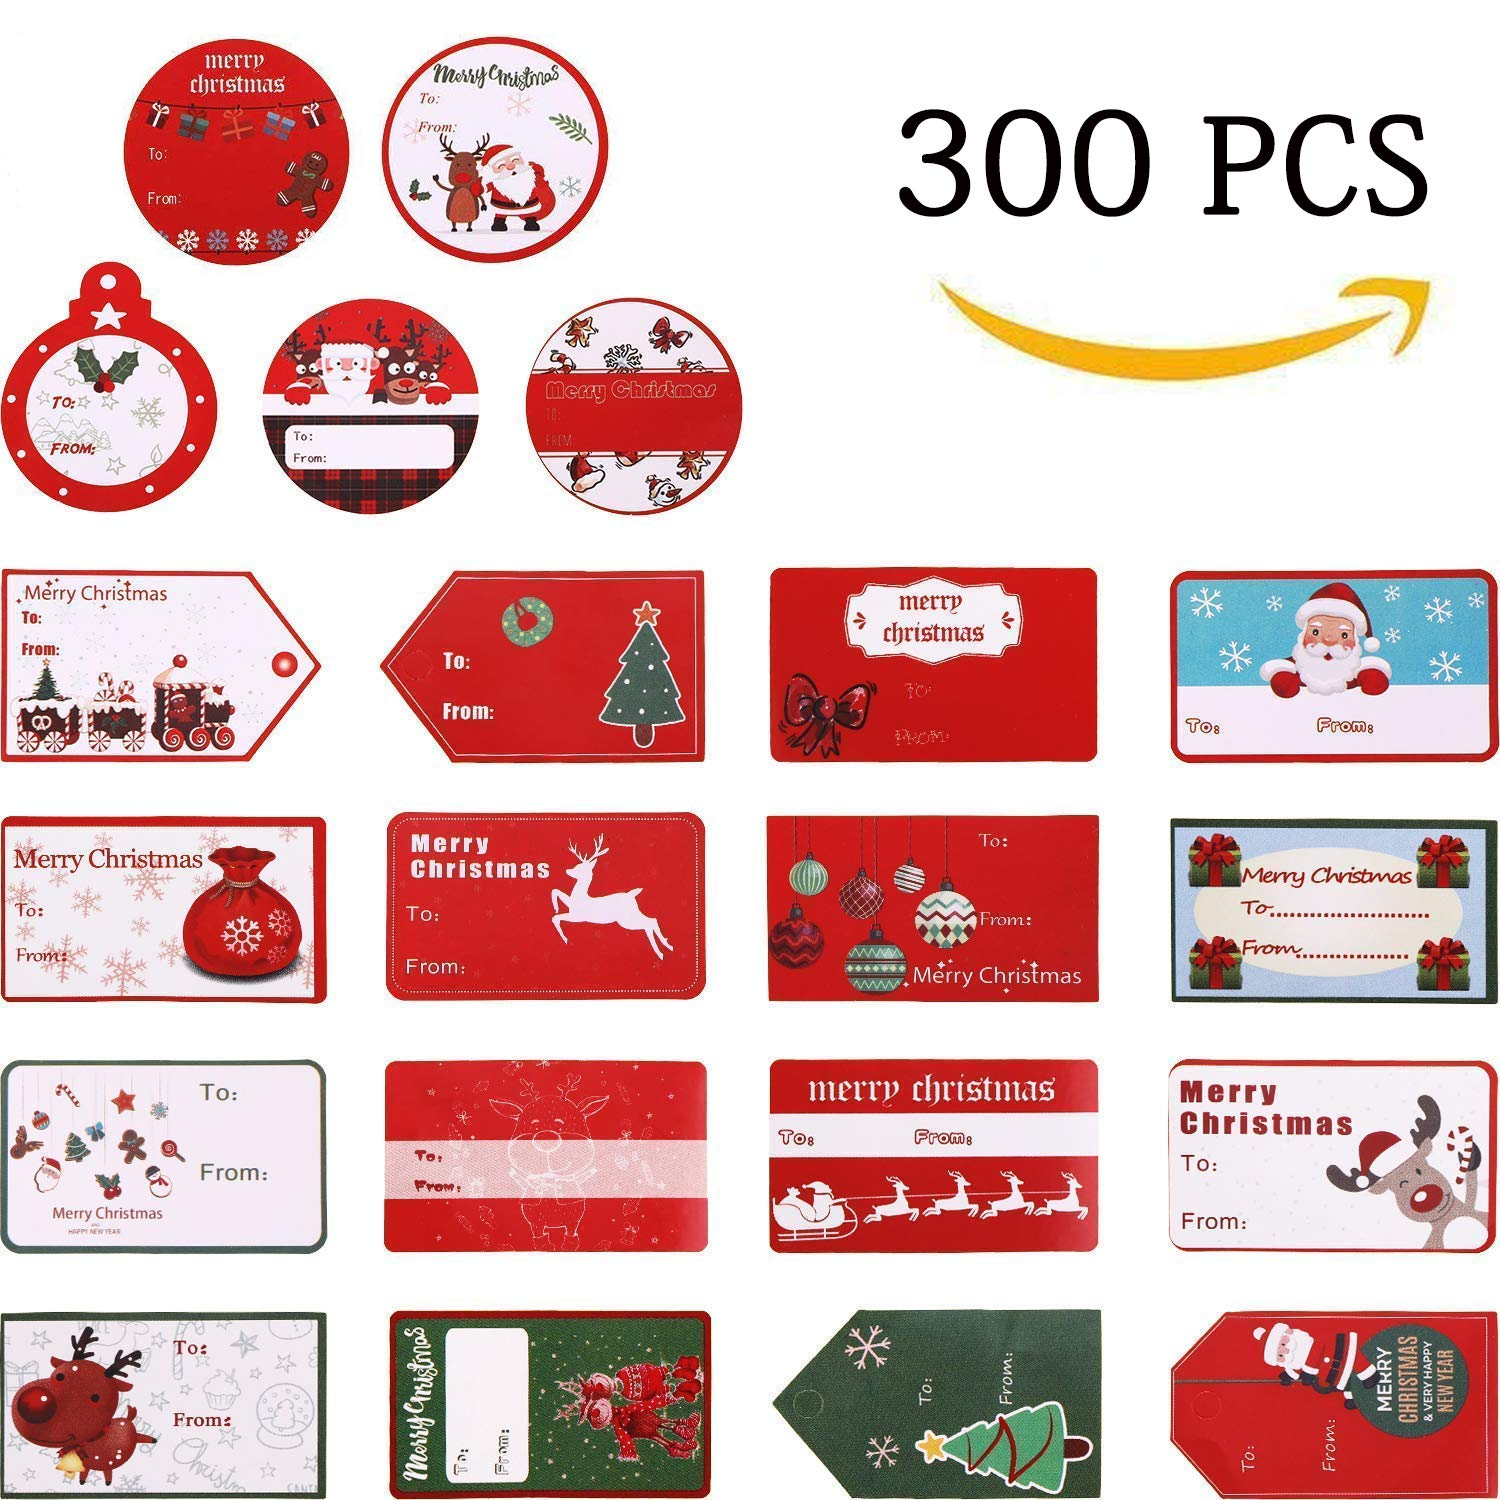 Christmas Tags.300 Pcs Christmas Gift Tags Christmas Stickers Name Tags Labels Decorative Stickers For Gifts